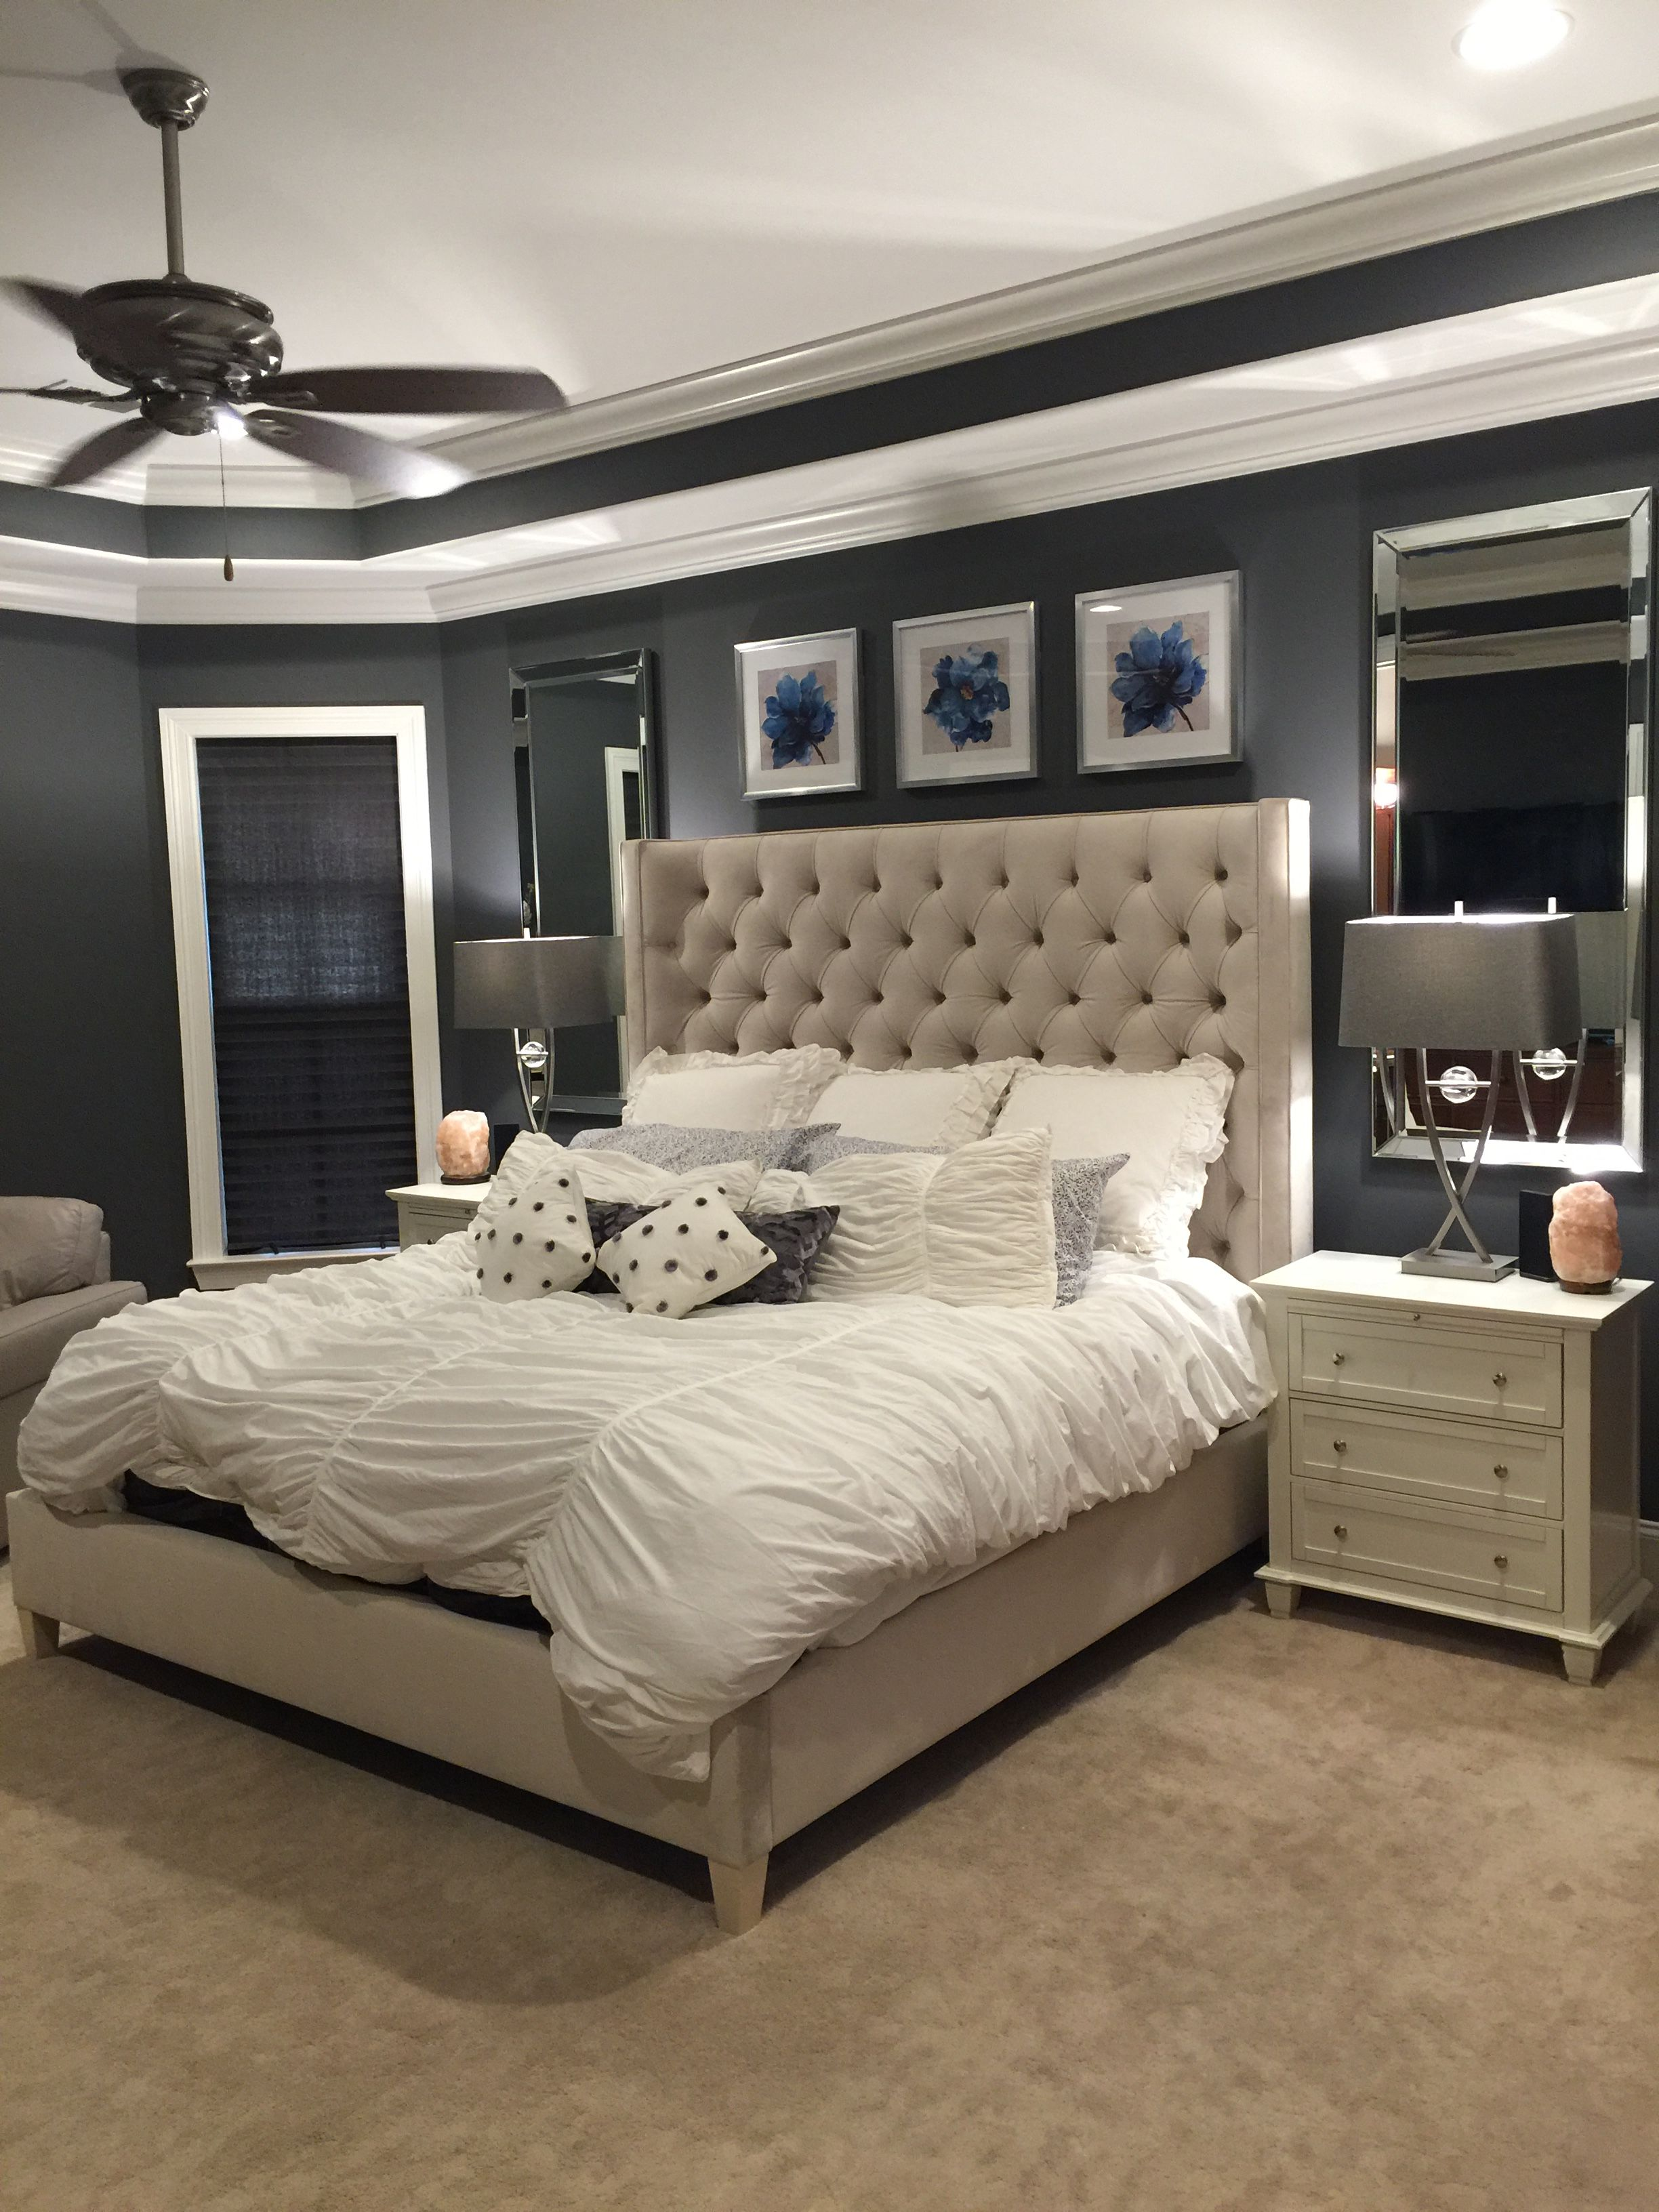 Serene Bedroom Bed By Bernhardt Lamps Pacific Coast Pictures Mirrors Homegoods Night Tables Rue La Paint Peppercorn Sherwin Williams